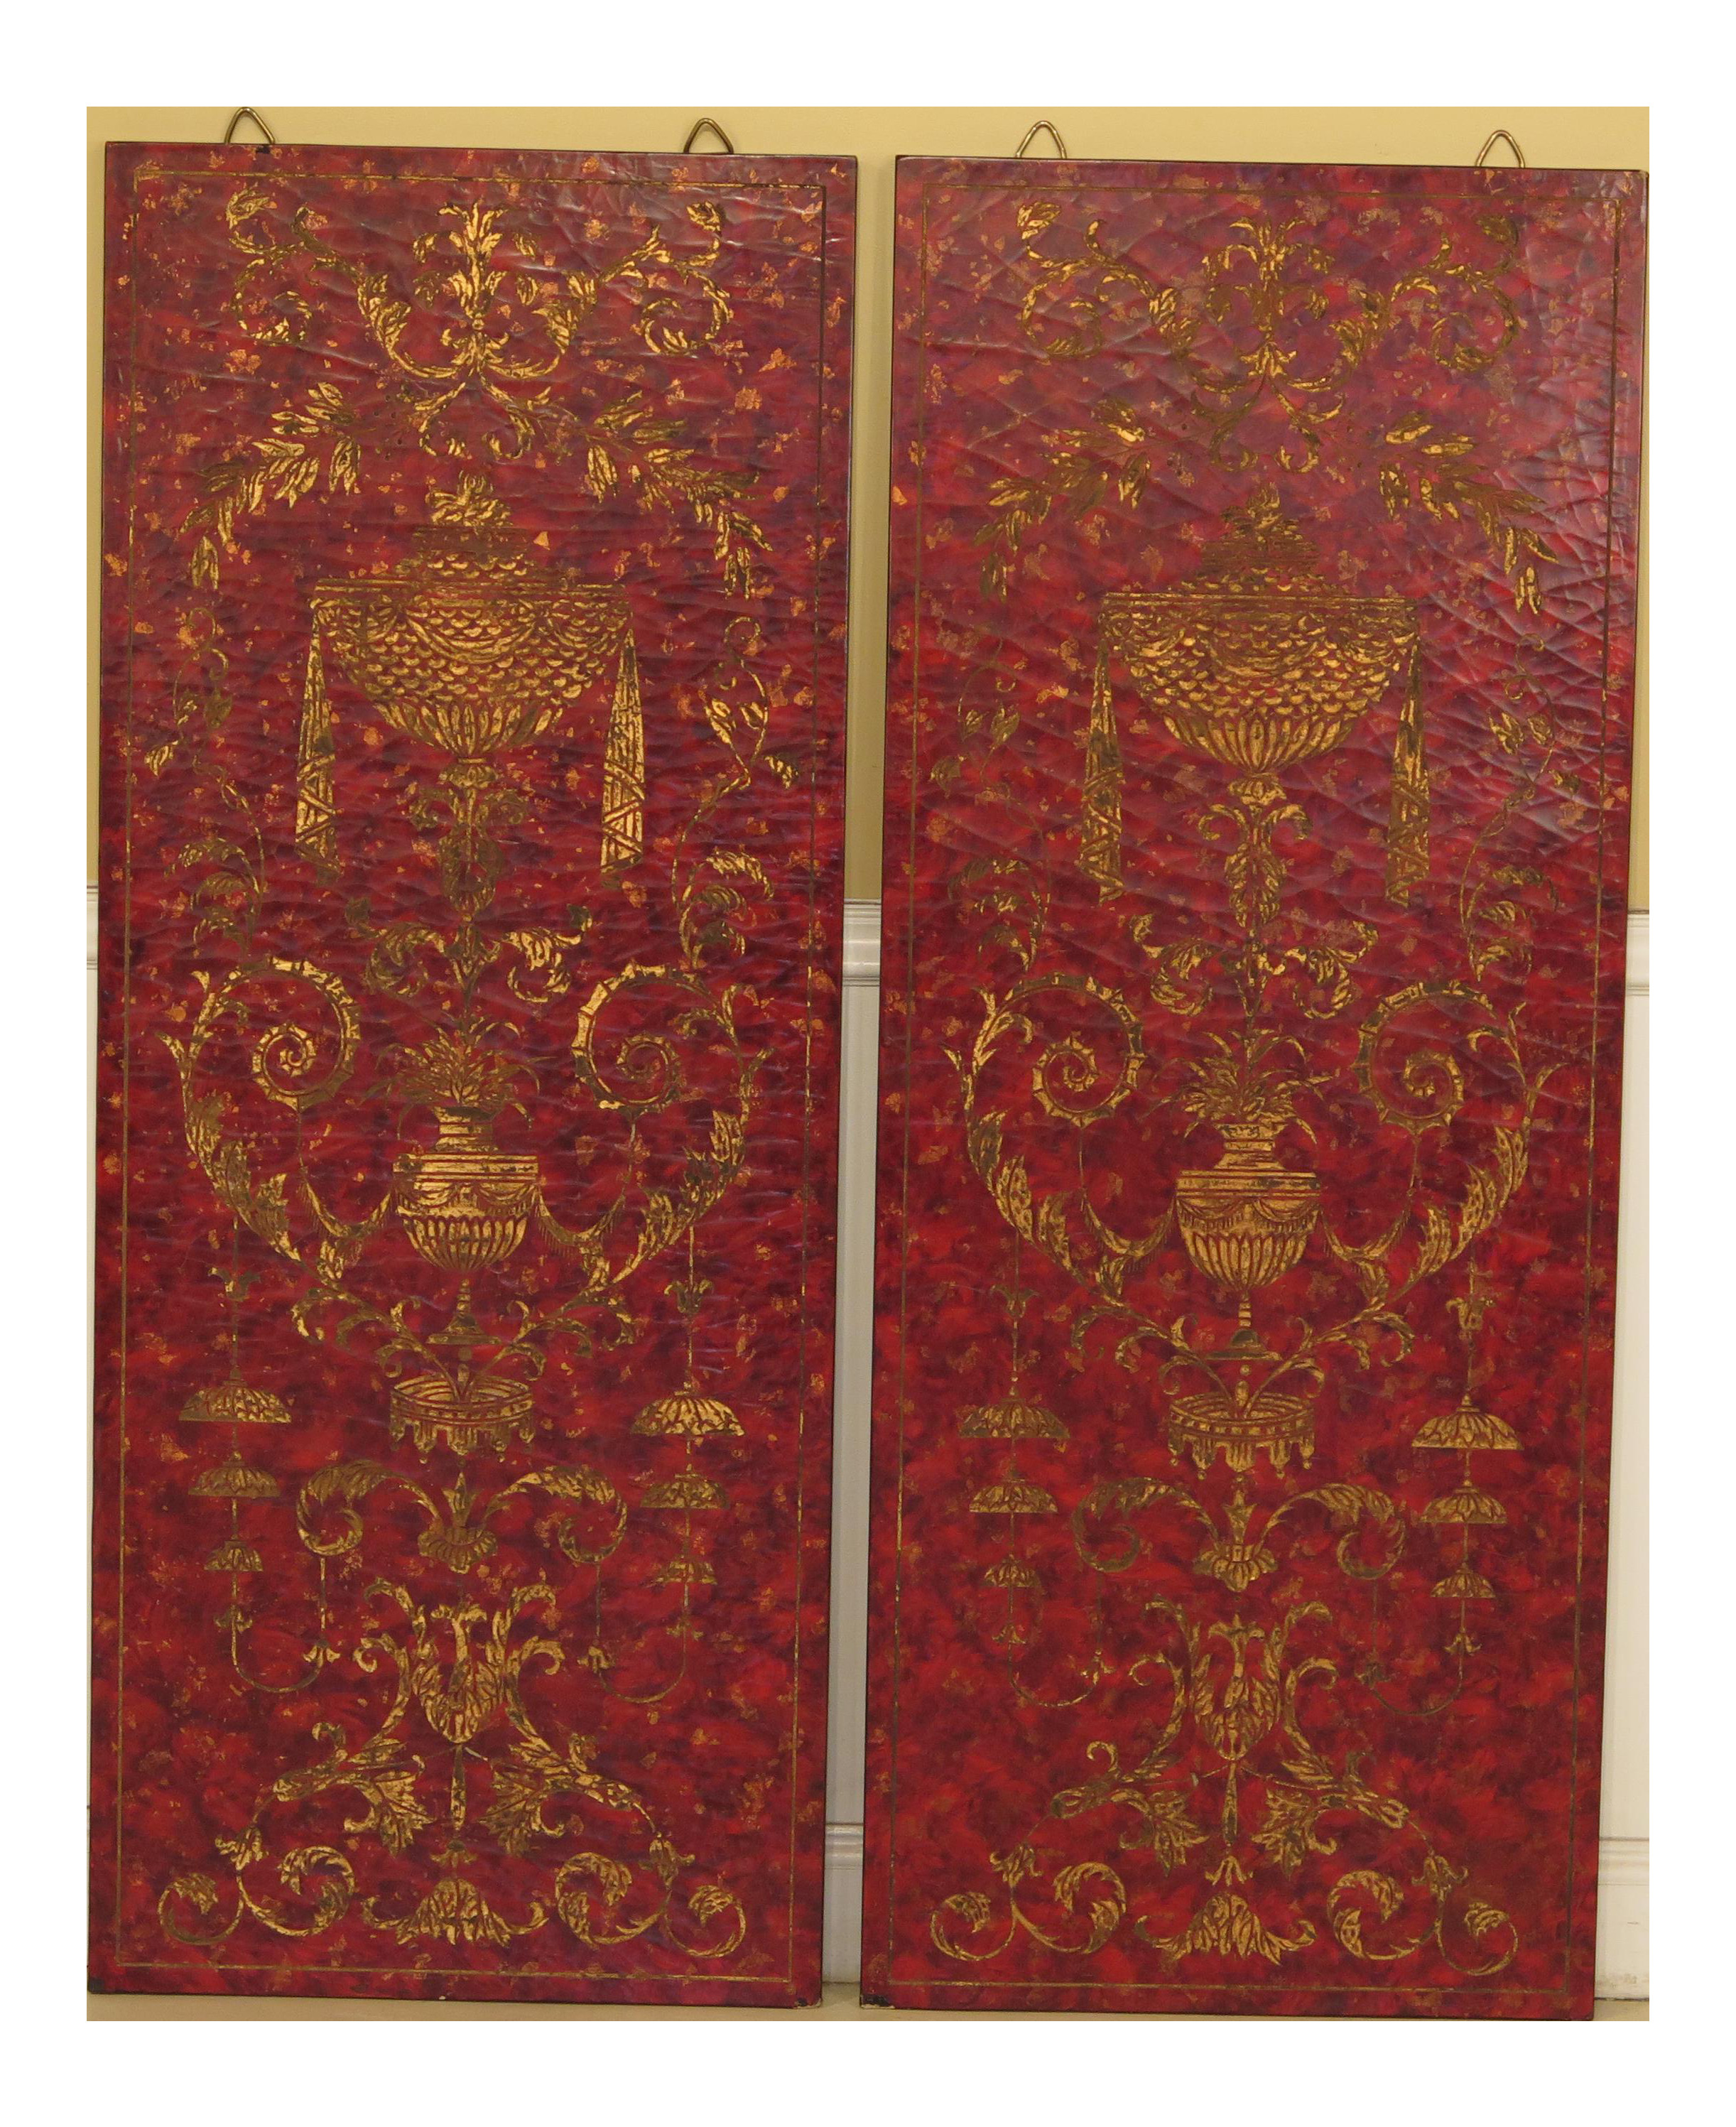 Maitland Smith Ltd Vase Of Maitland Smith Decorative Wall Panels A Pair Chairish Throughout Maitland Smith Decorative Wall Panels A Pair 9861